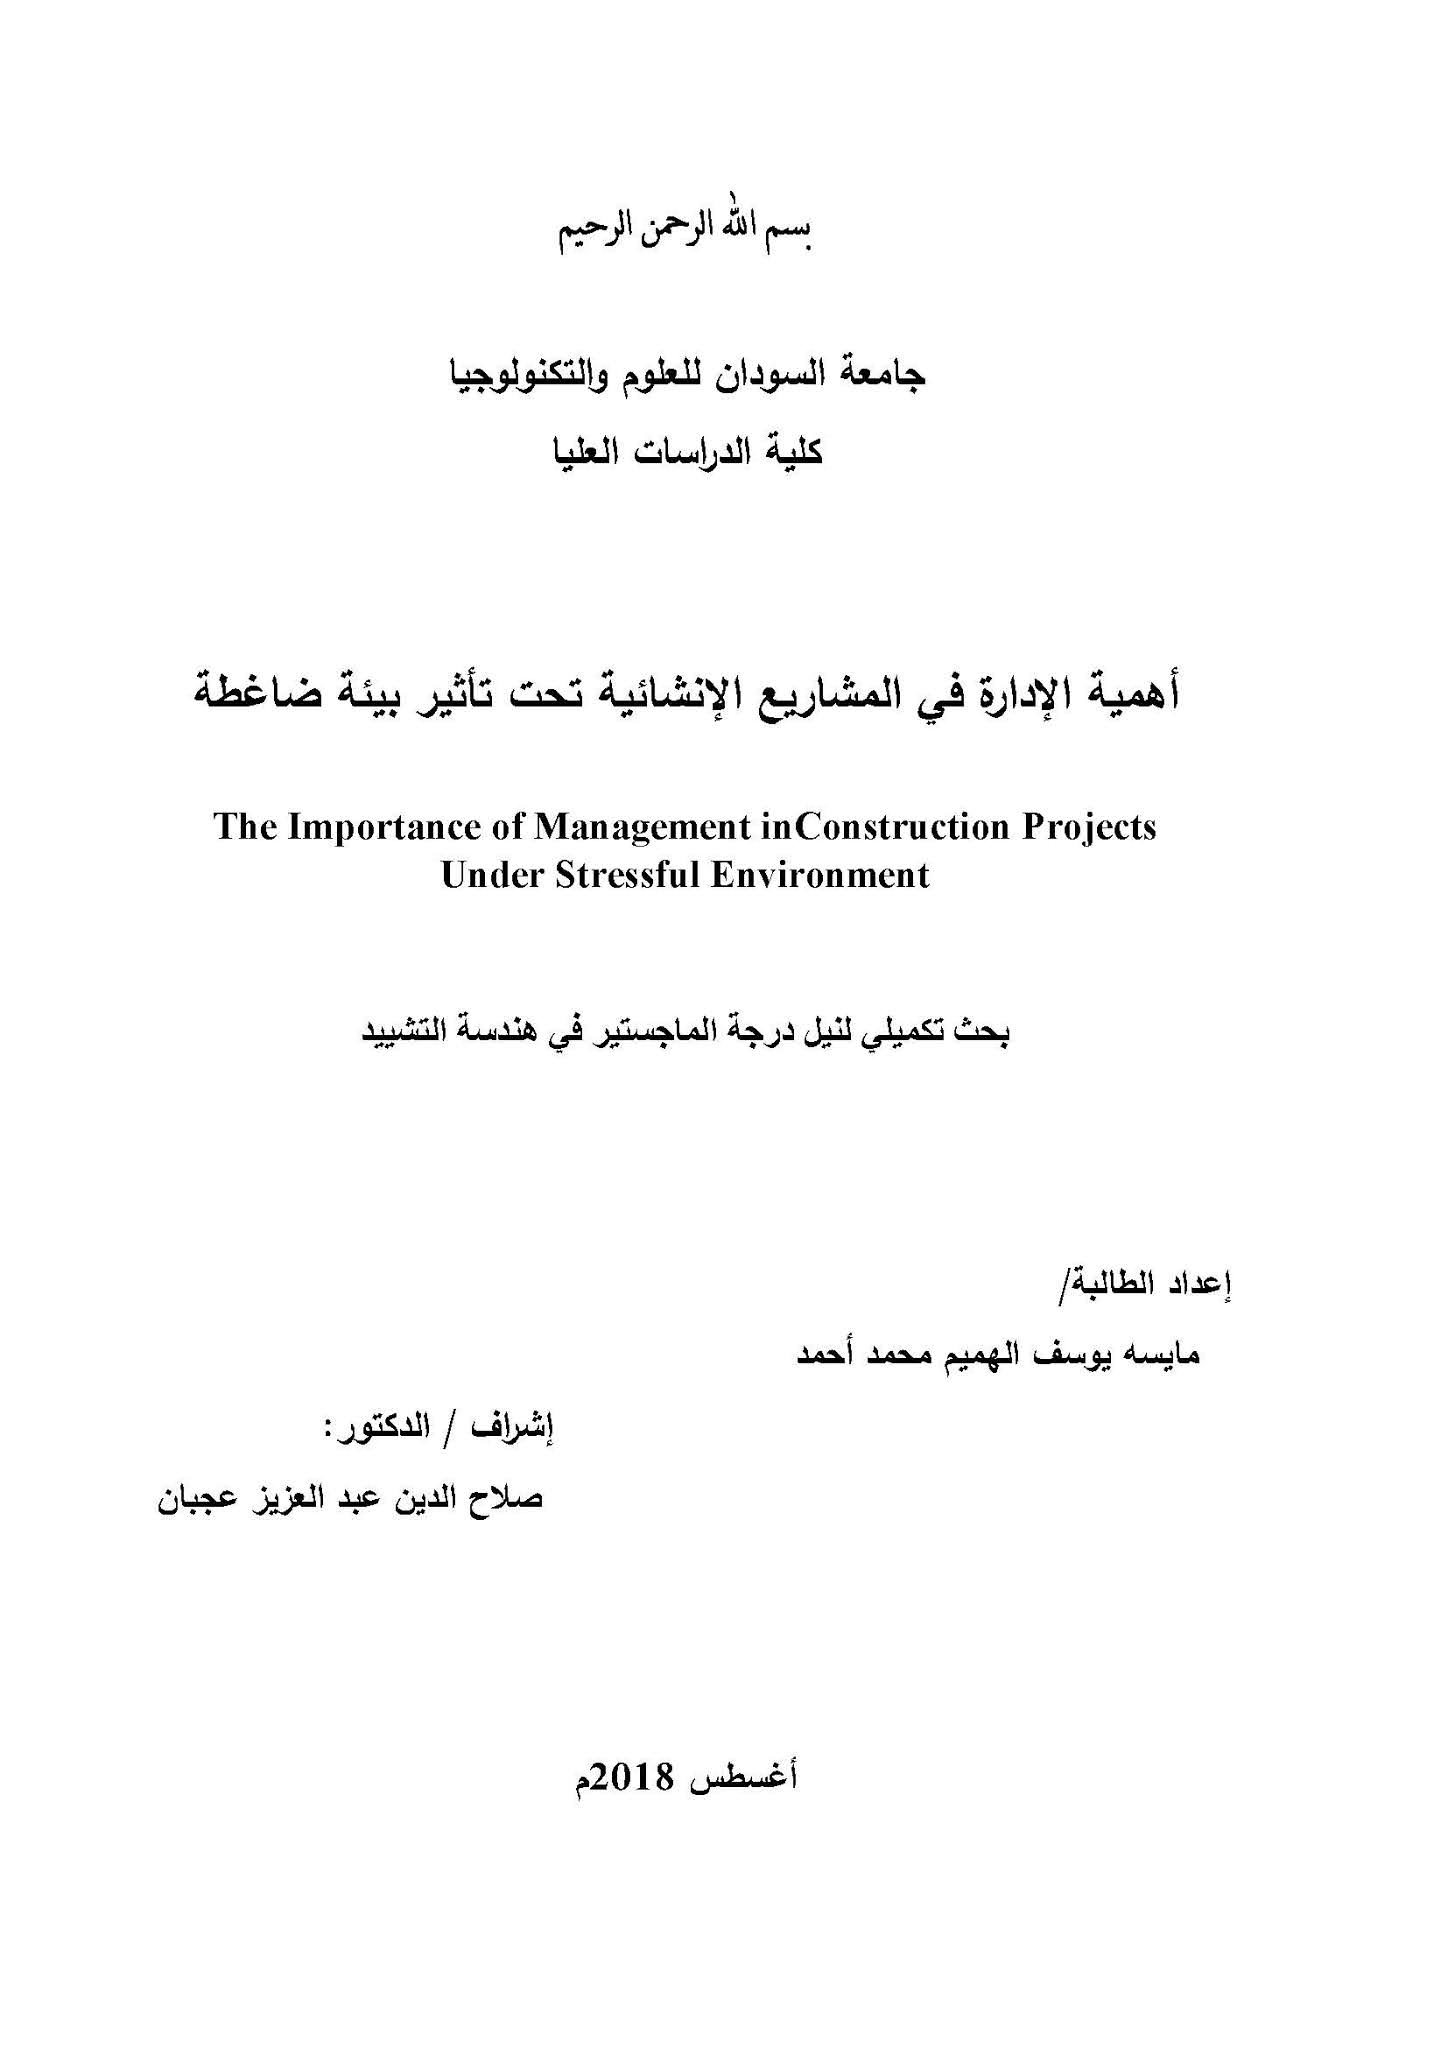 The Importance of Management in Construction Projects Under Stressful Environment